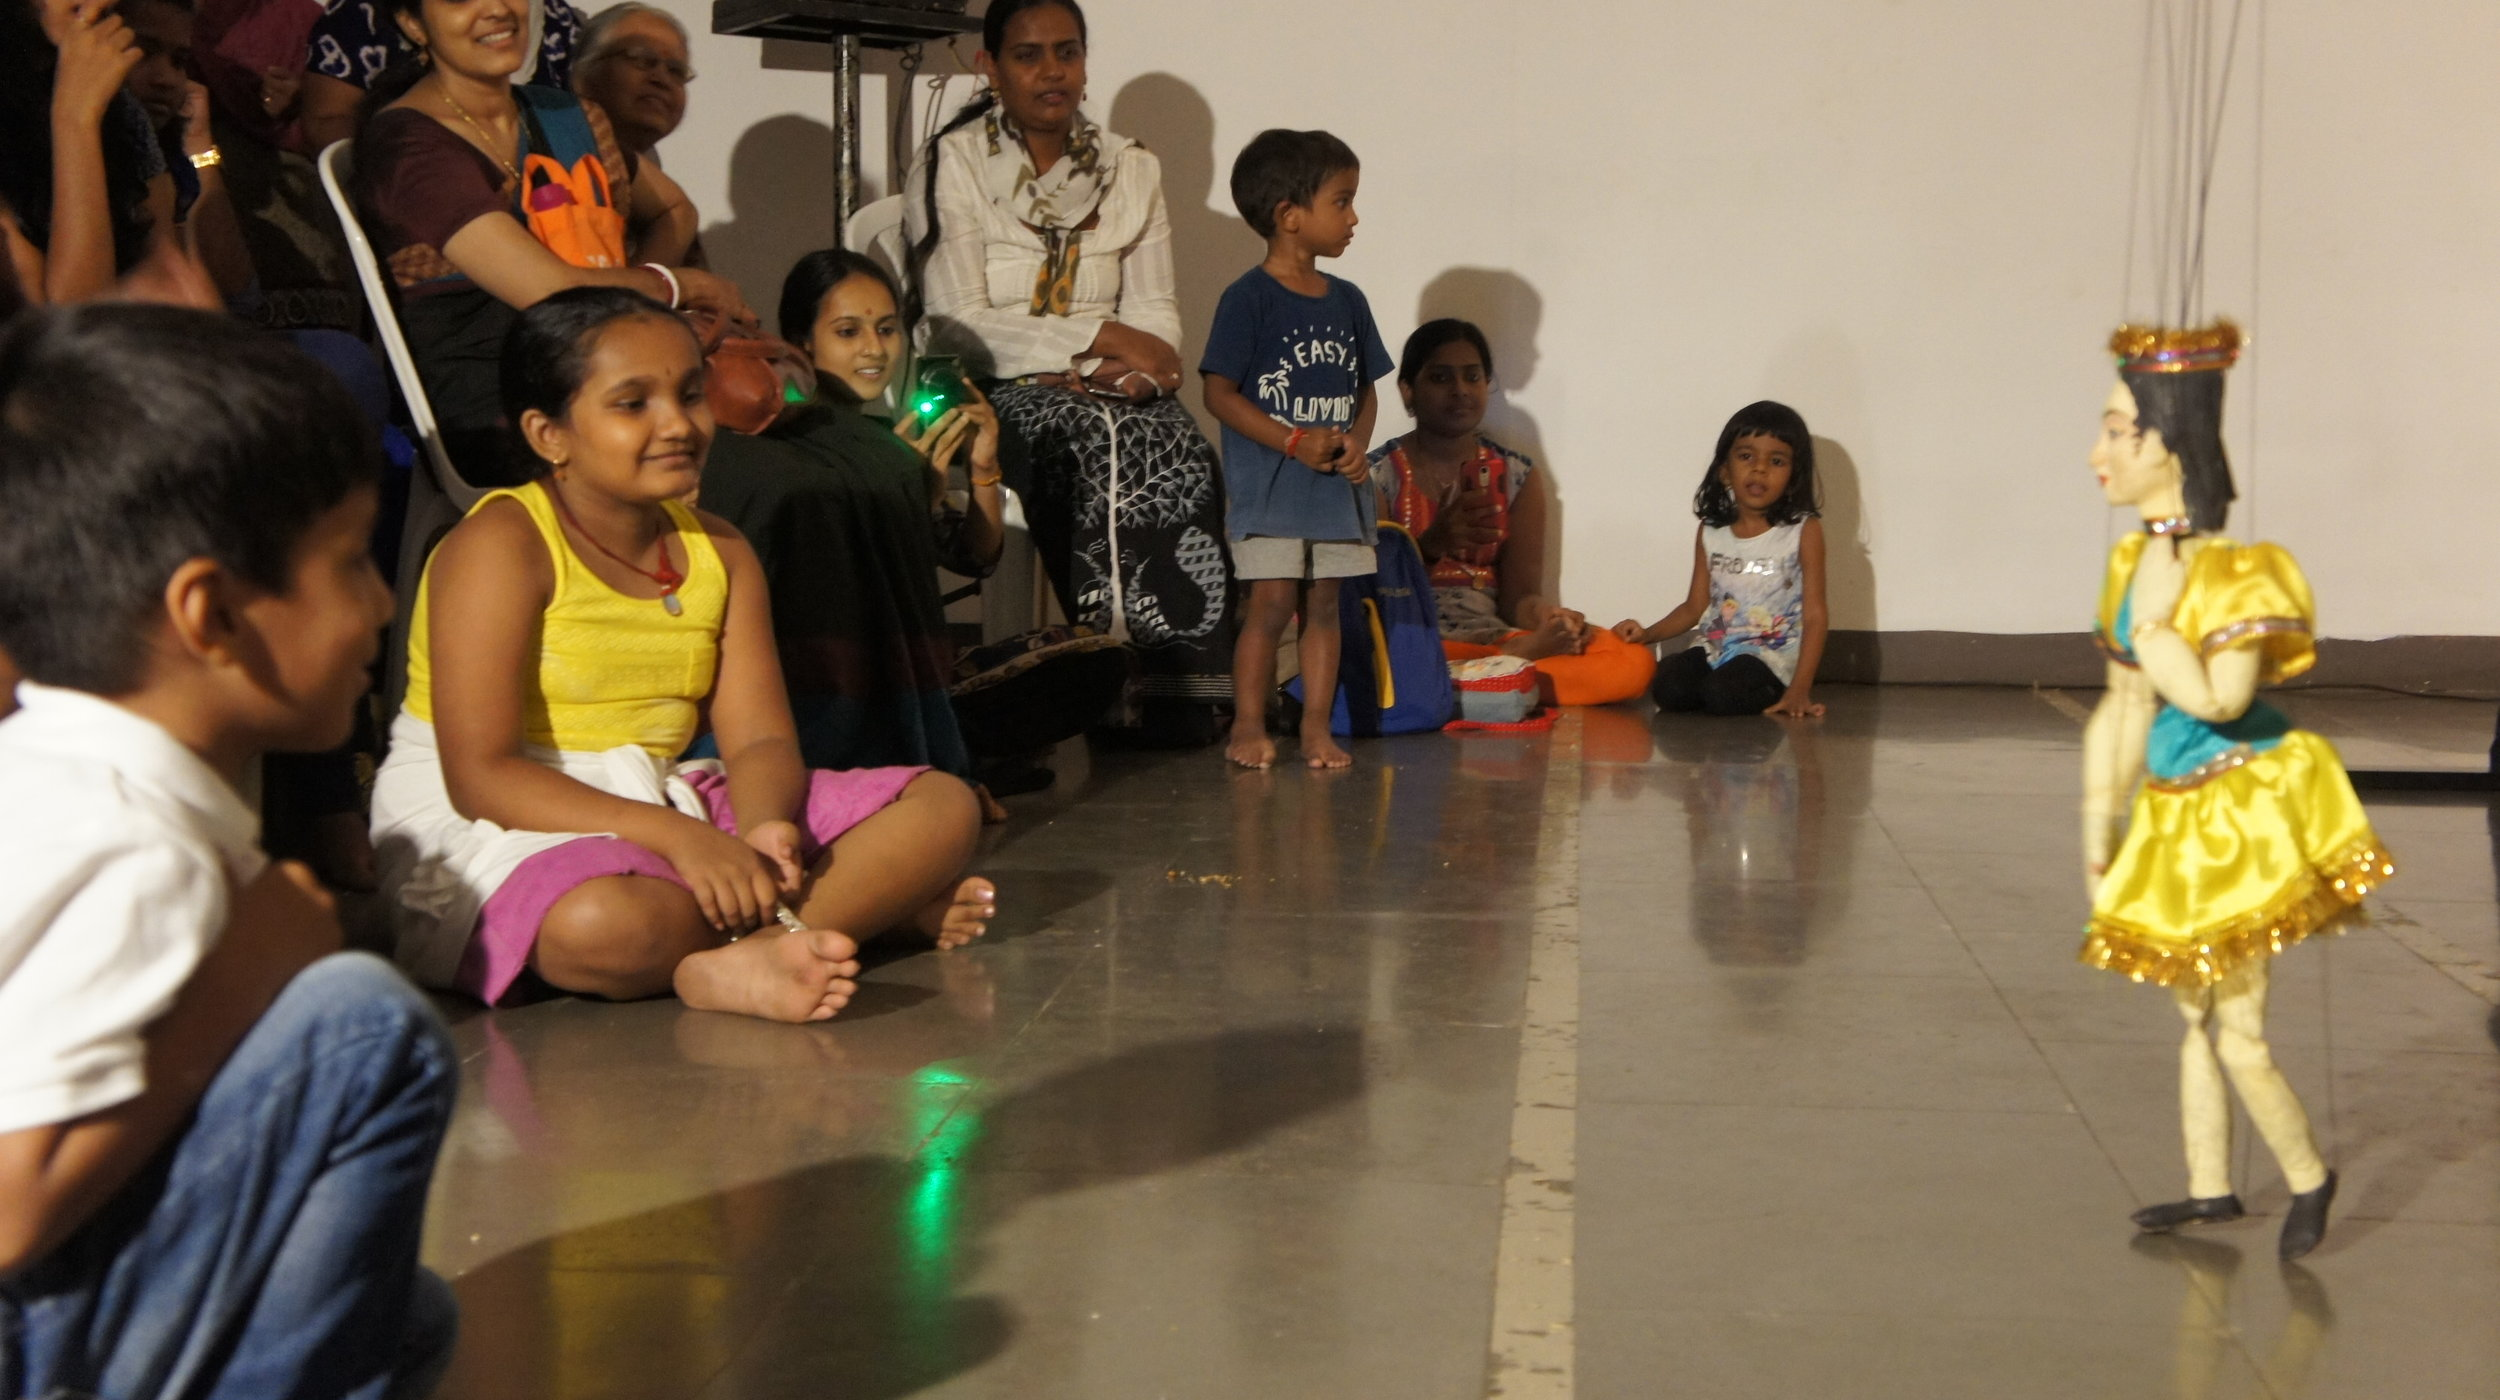 Children watch a puppet show